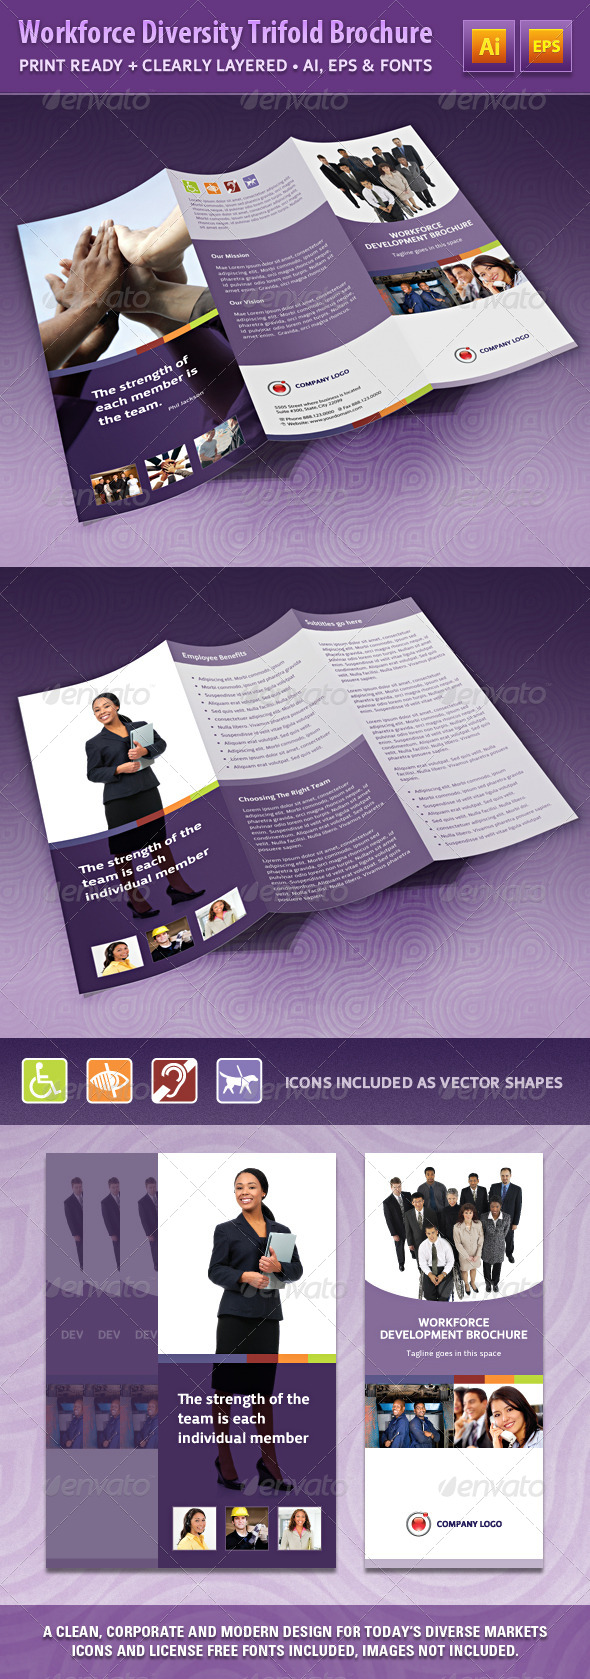 Workforce Diversity Trifold Brochure - Brochures Print